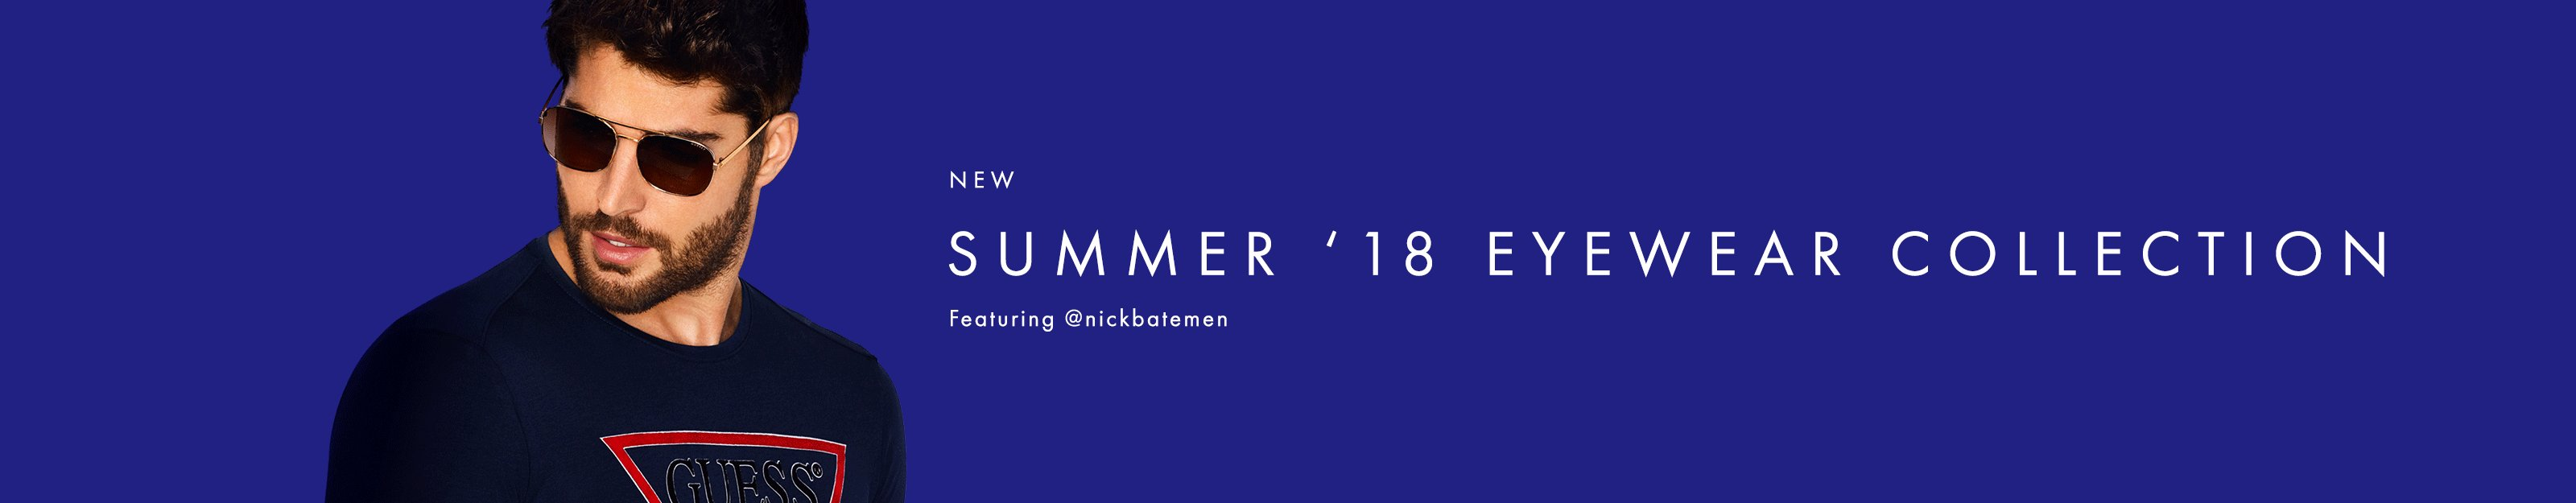 Summer '18 Eyewear Collection